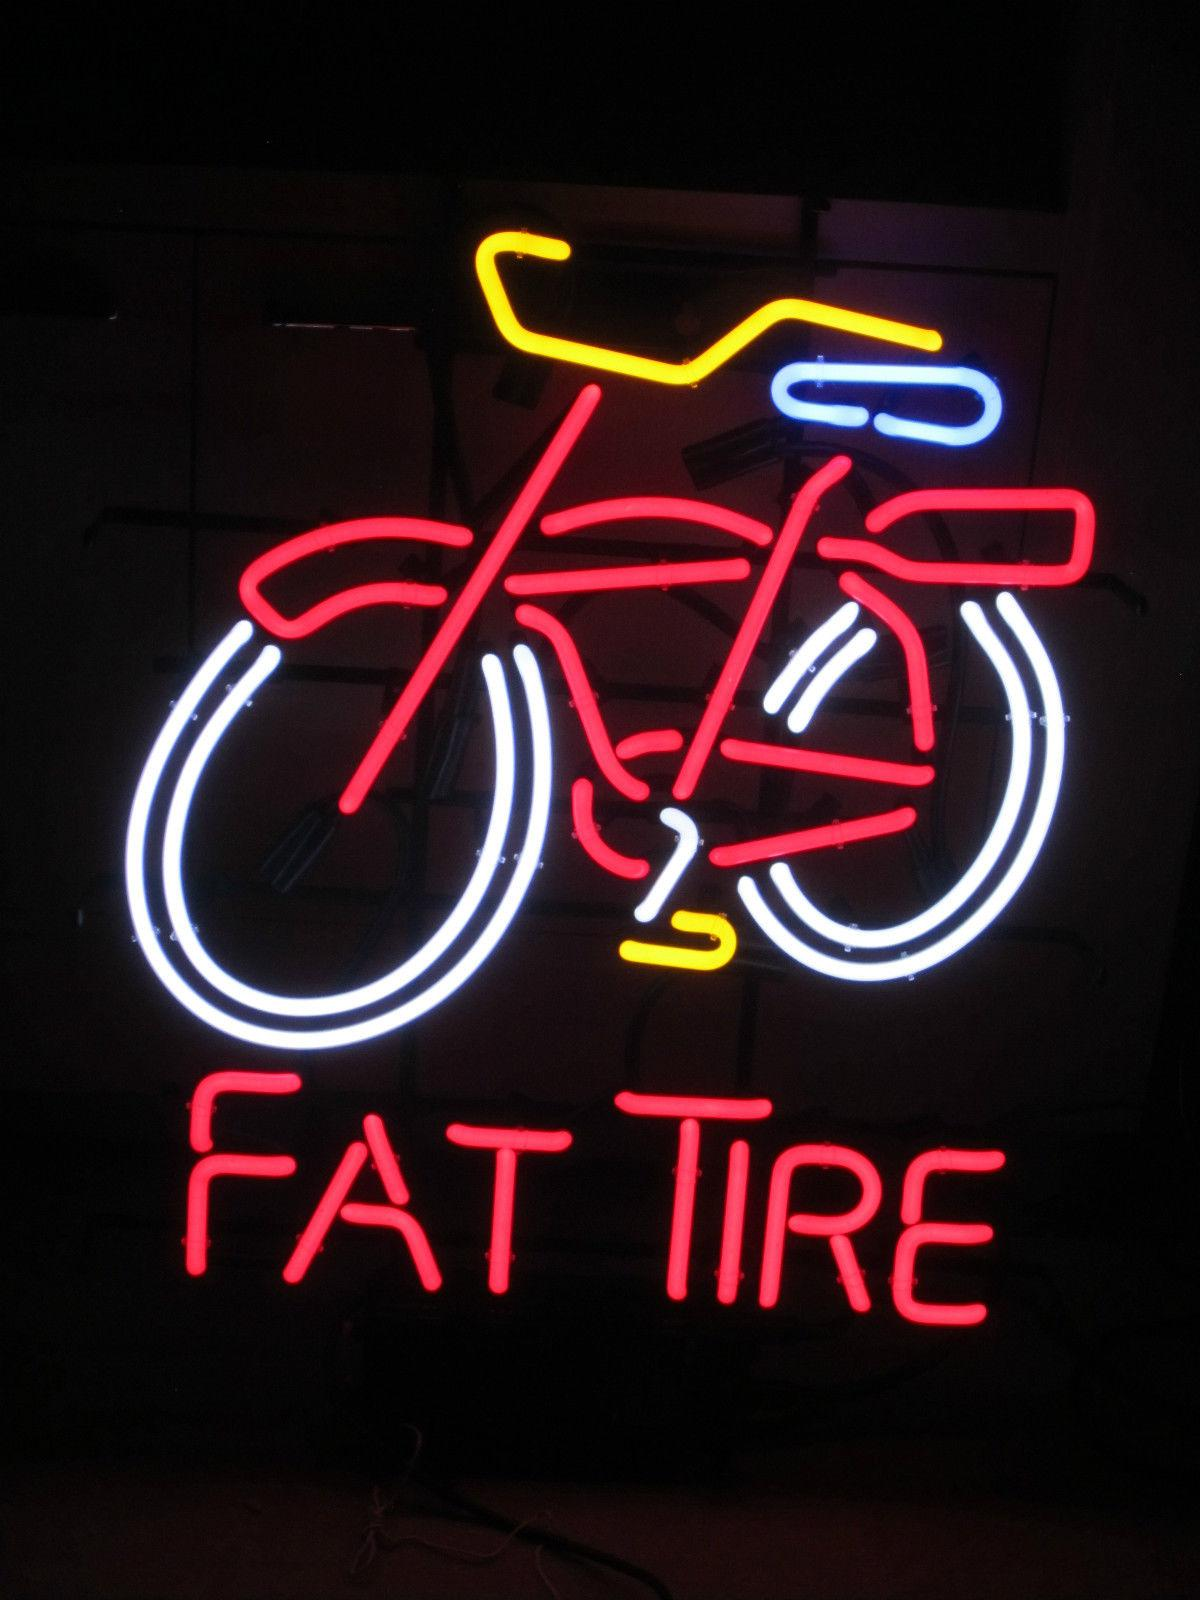 Fat tire glass neon sign beer new bar light 19 neon signs fat tire fat tire glass neon sign beer new bar light 19 neon signs fat tire fat tire neon sign online with 31229piece on huangxiaxings store dhgate aloadofball Image collections